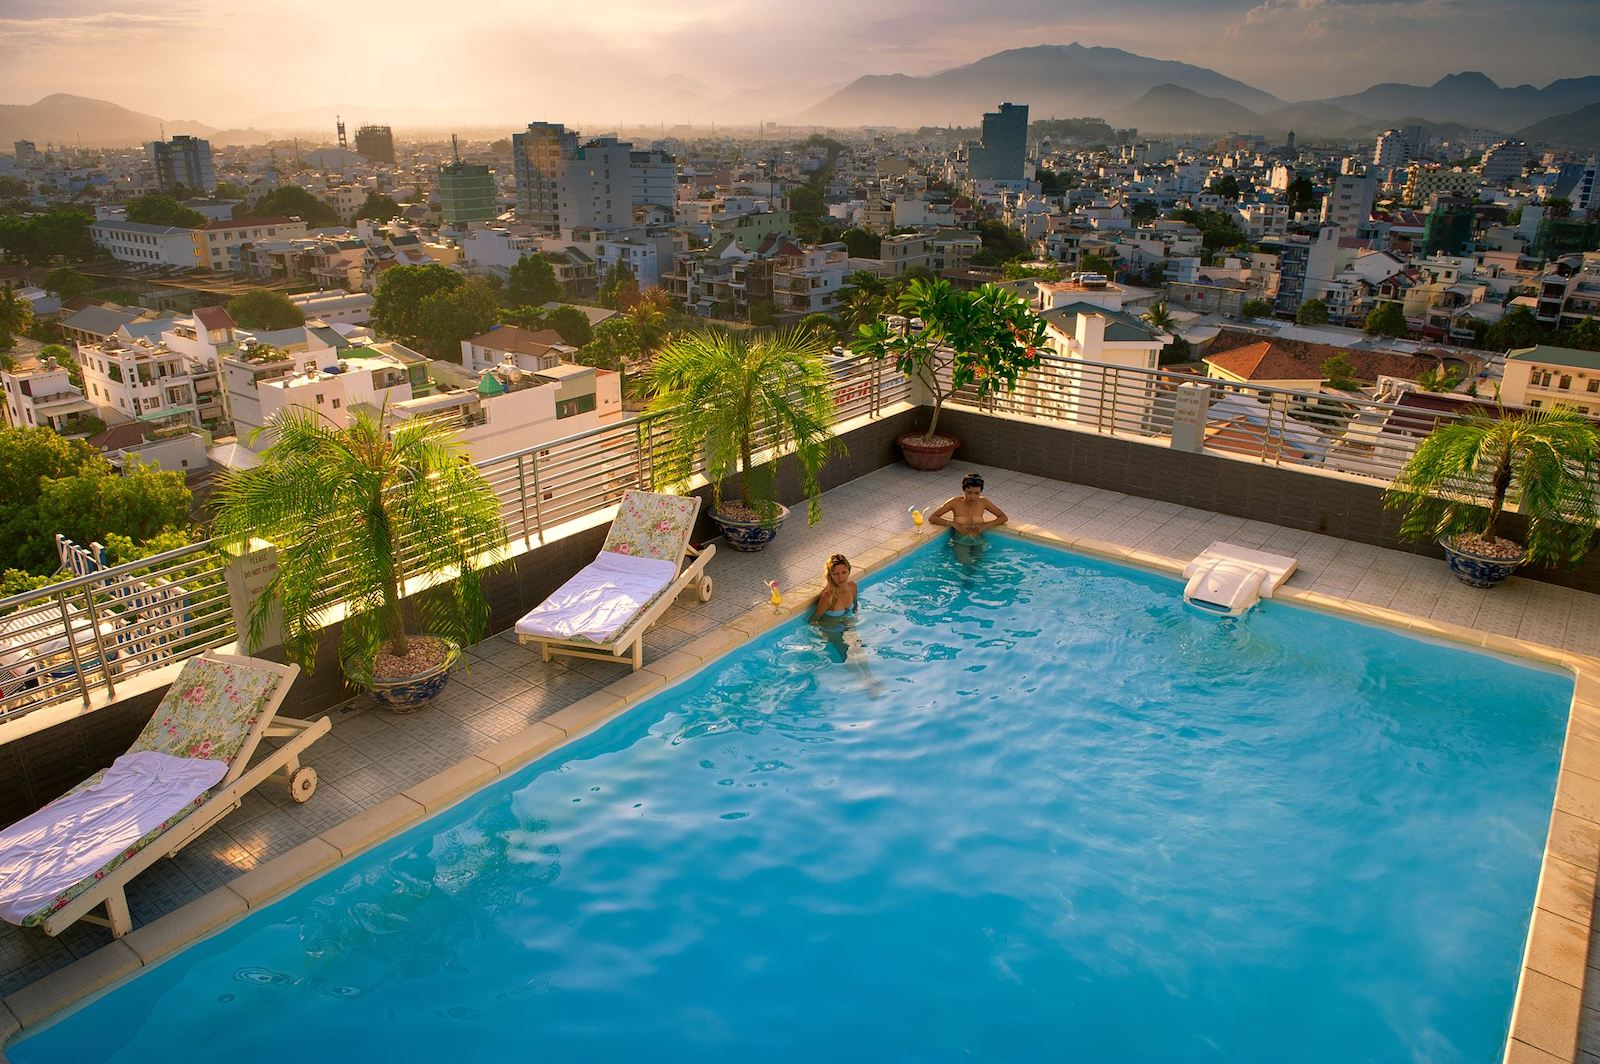 Image of the rooftop pool at the summer hotel in Nha Trang, Vietnam